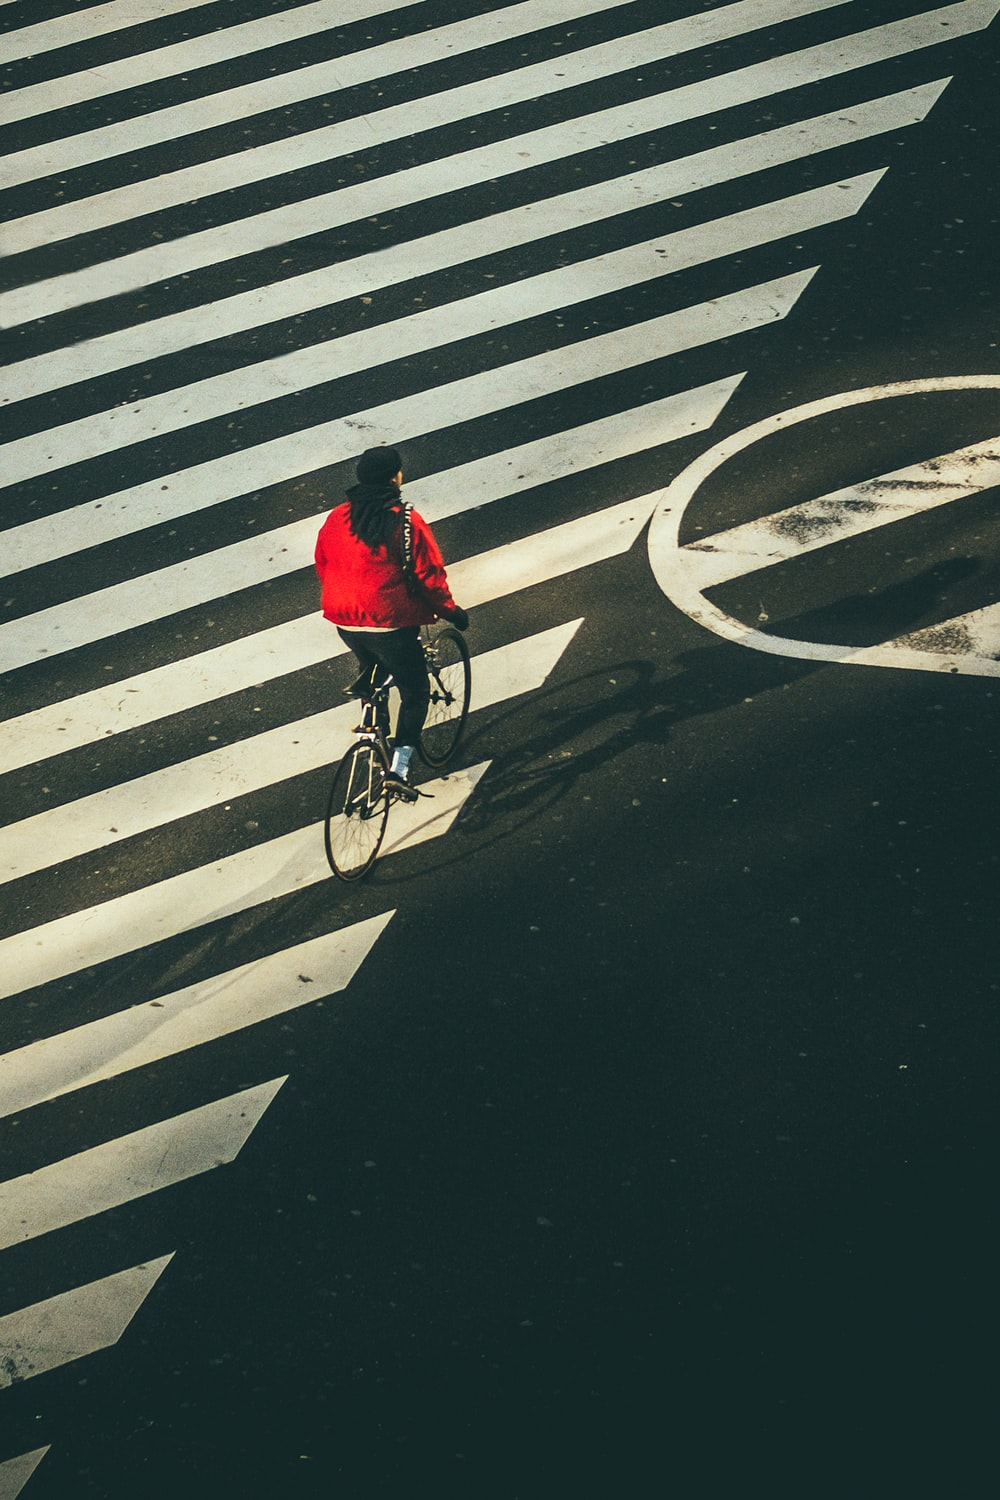 person riding on bicycle on street during daytime